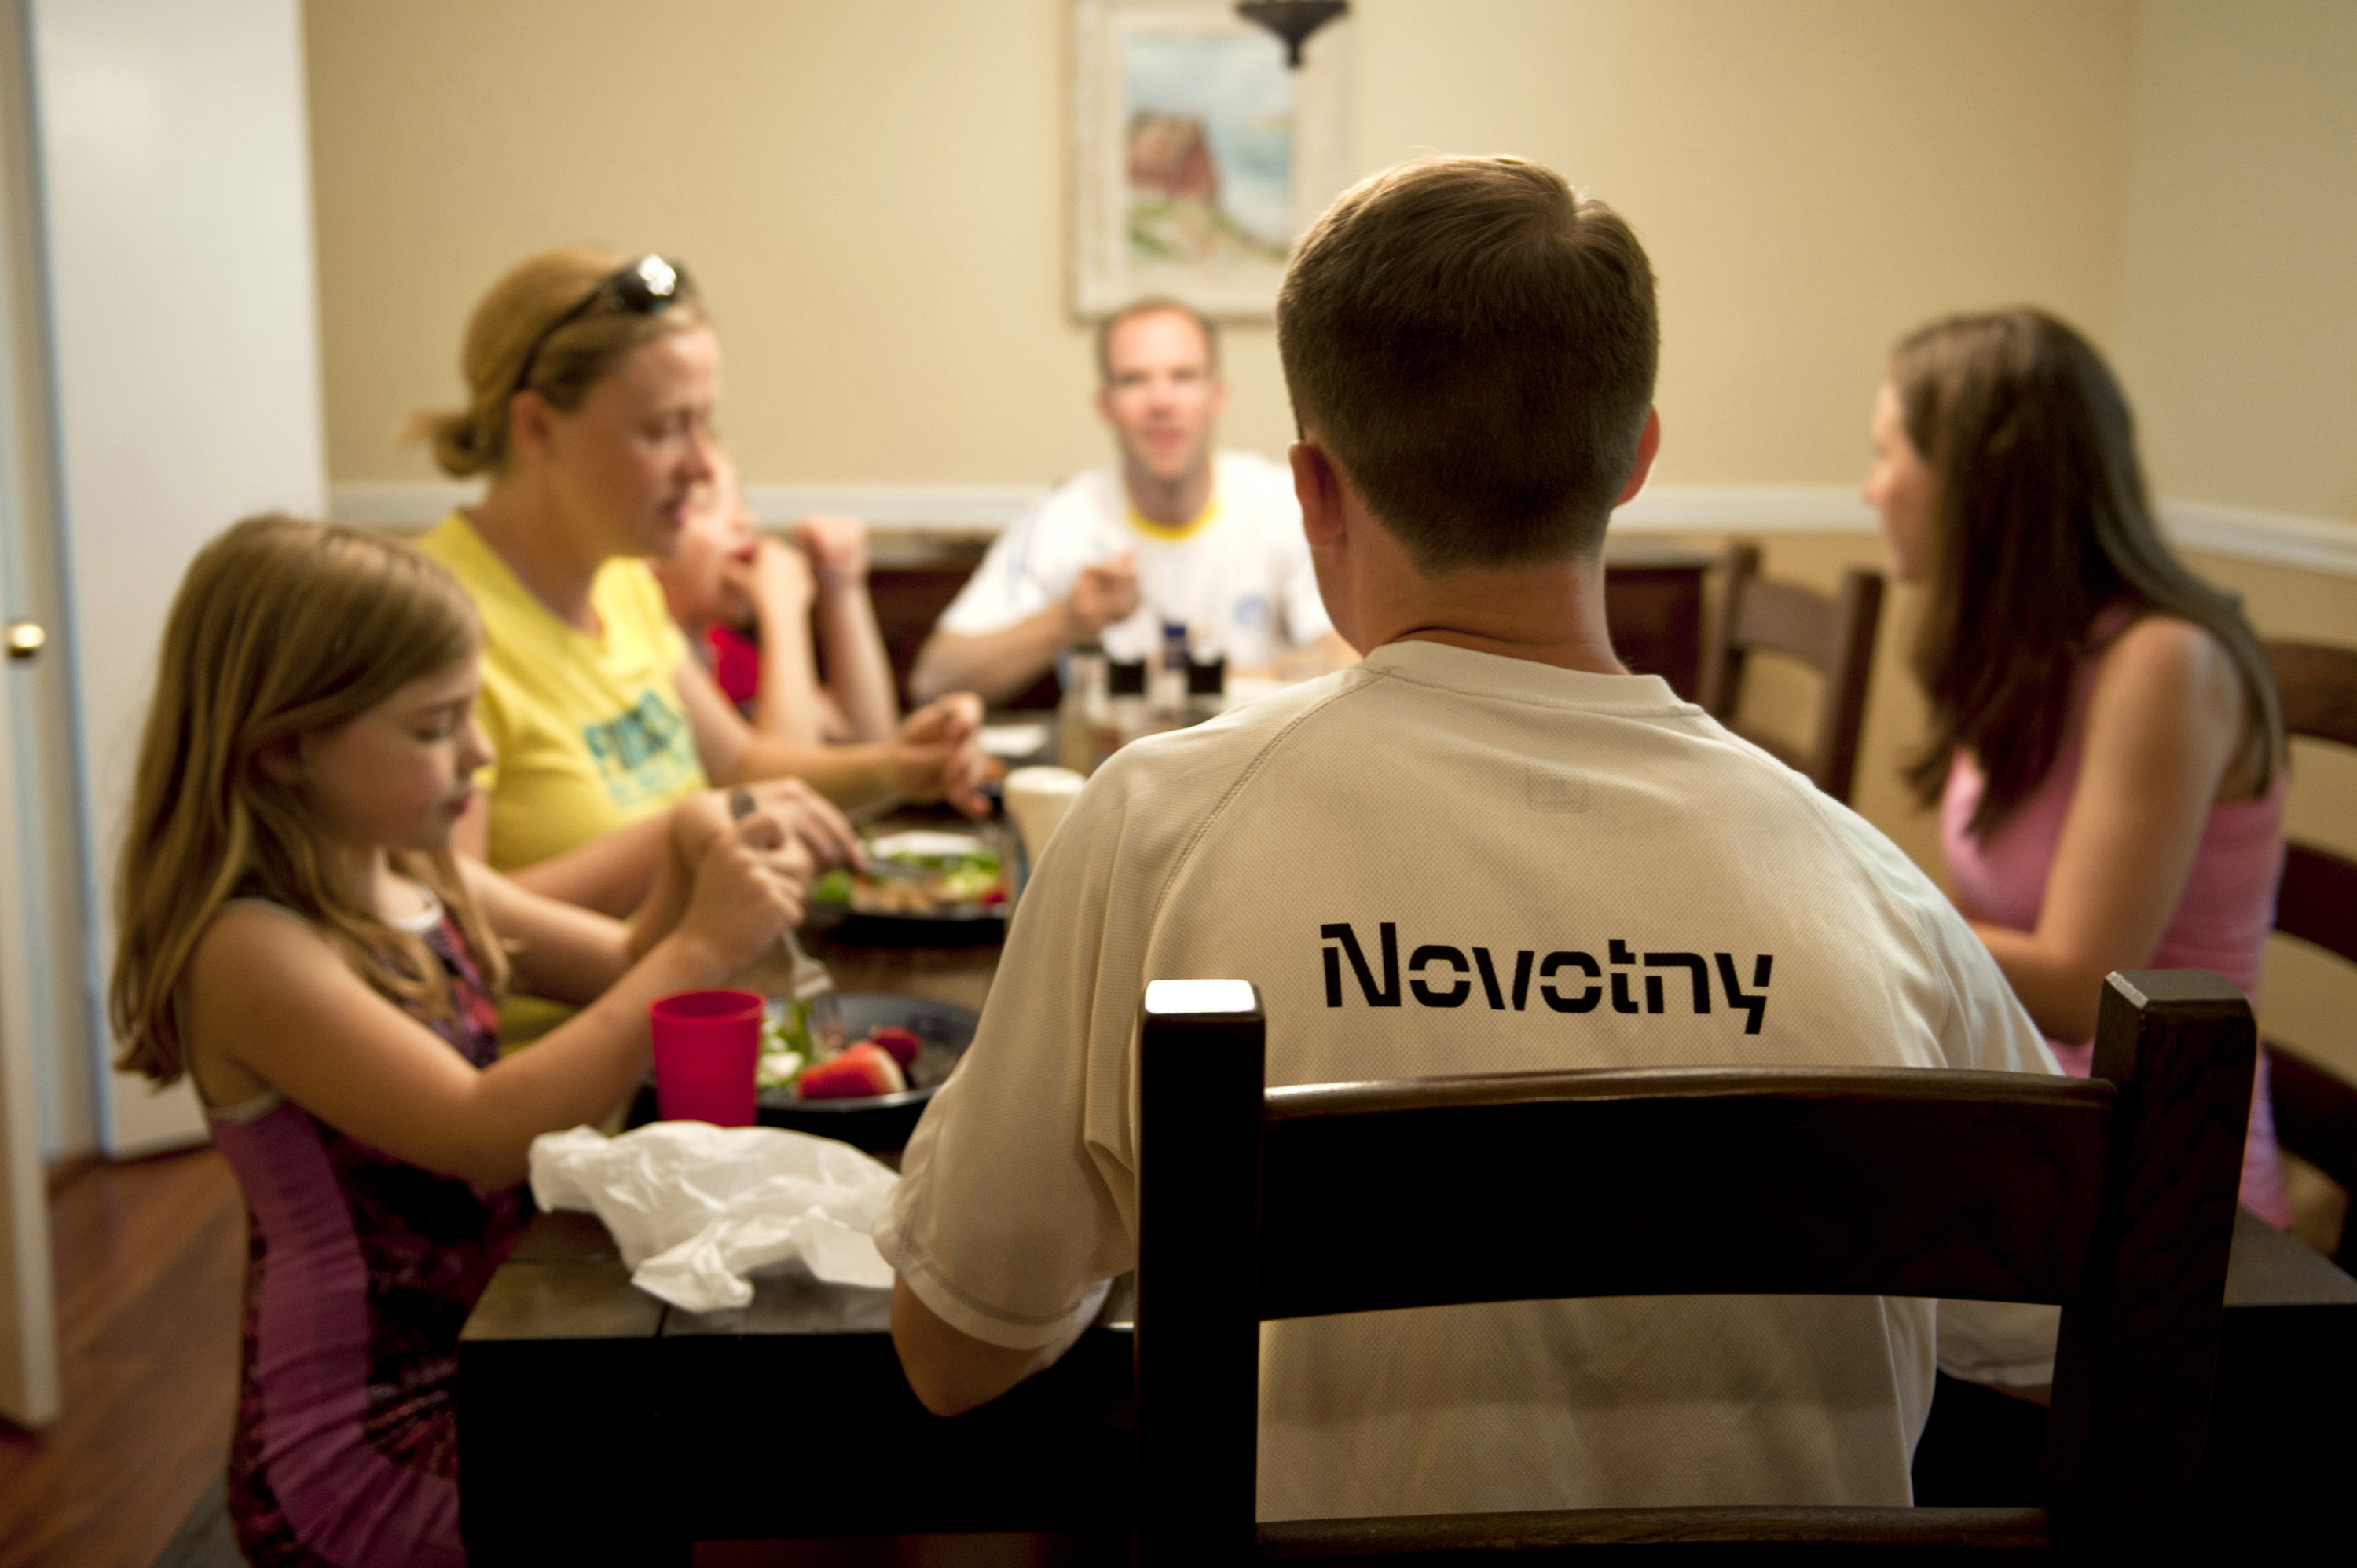 family-conversation-at-the-table